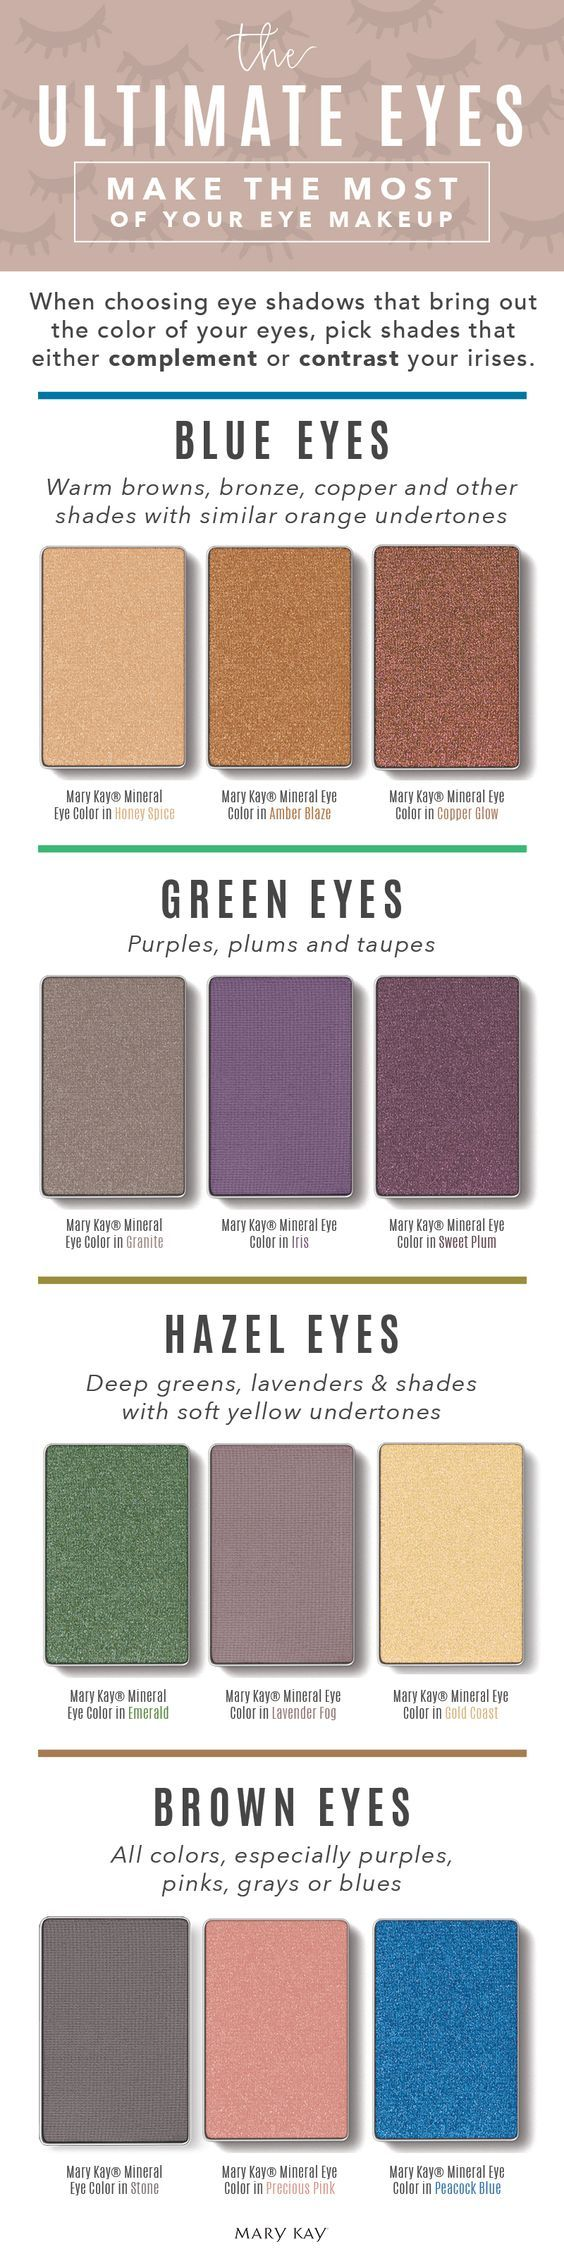 When choosing eye shadows that bring out the colour of your eyes, pick shades that either complement or contrast your irises. Play up gorgeous brown, hazel, green or blue eyes with shadows that help them stand out! | Mary Kay